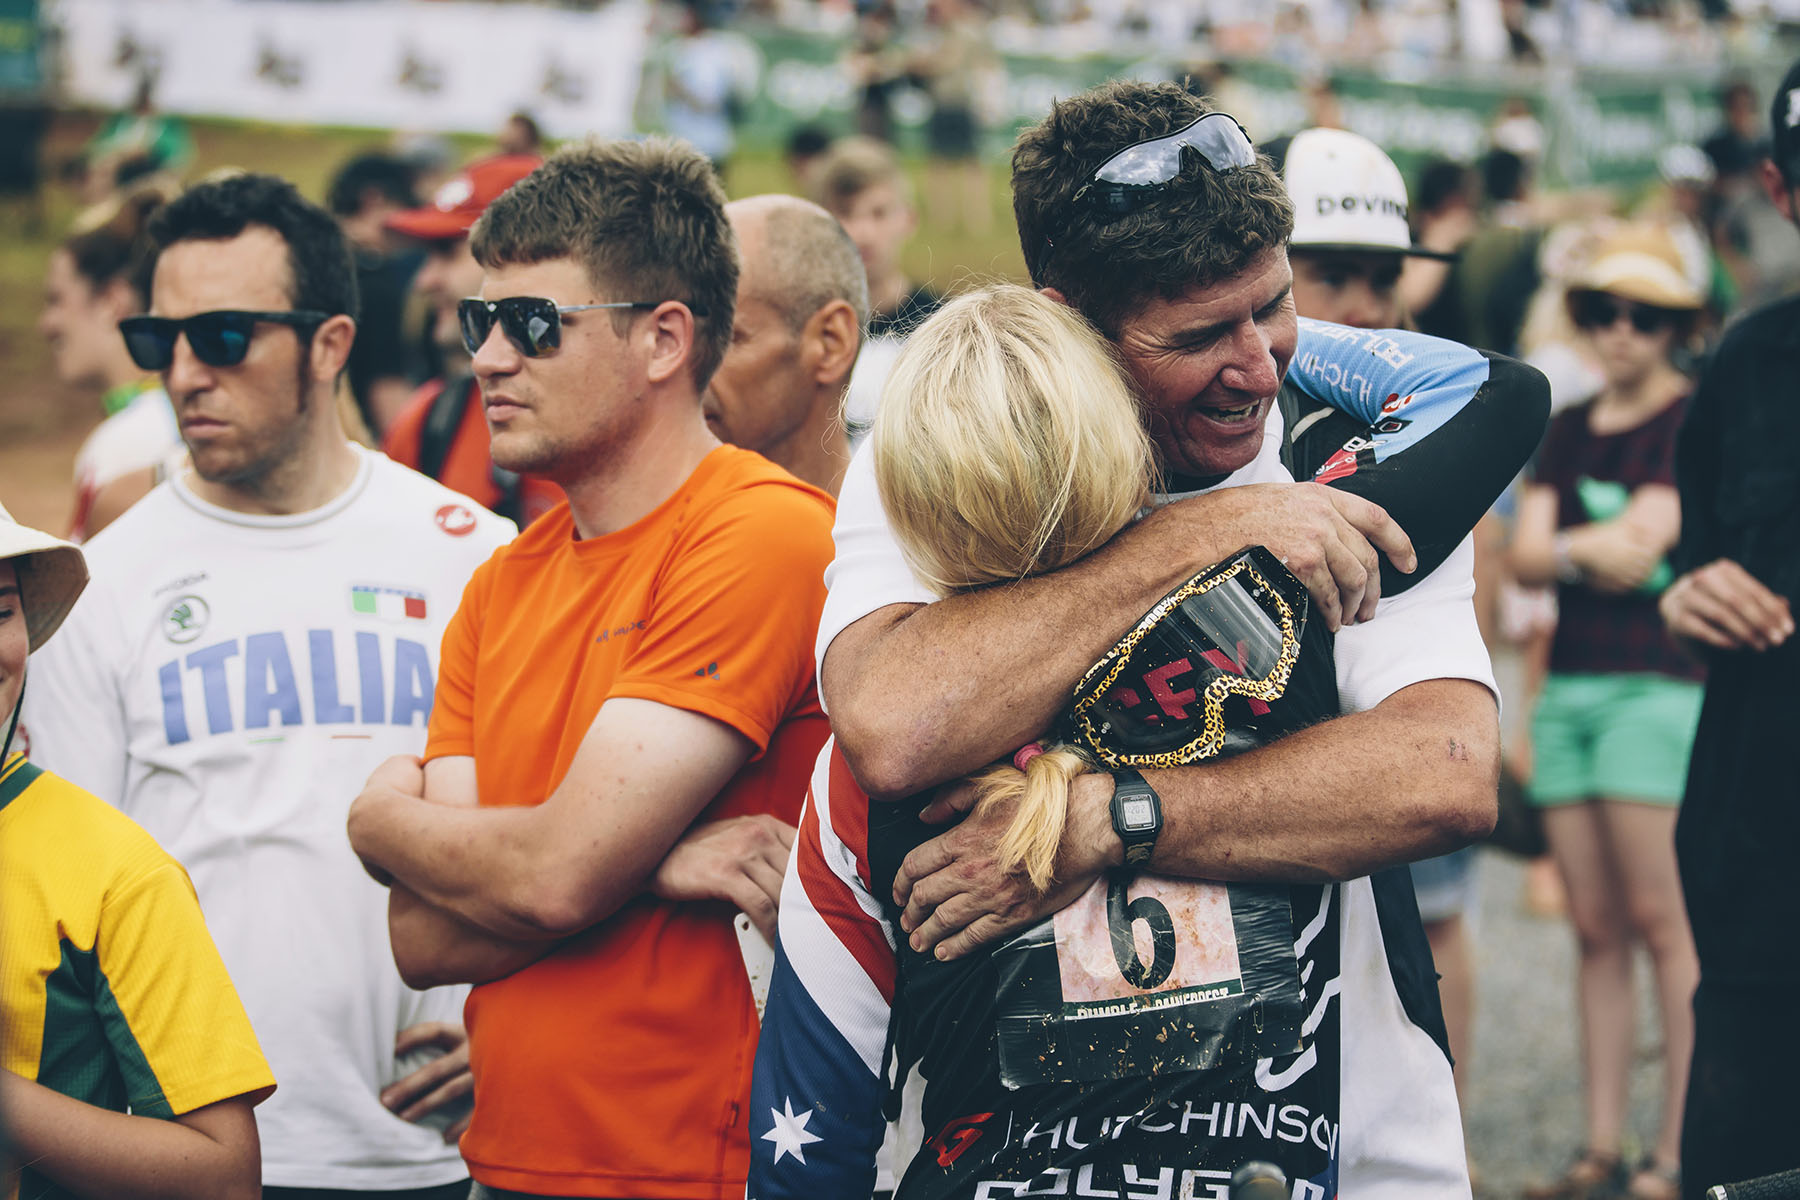 Racing in front of so many family members is never an easy thing, but the feeling of coming down in a good place and it being over most be pretty good too. Tracey celebrates her podium amongst her friends and family.